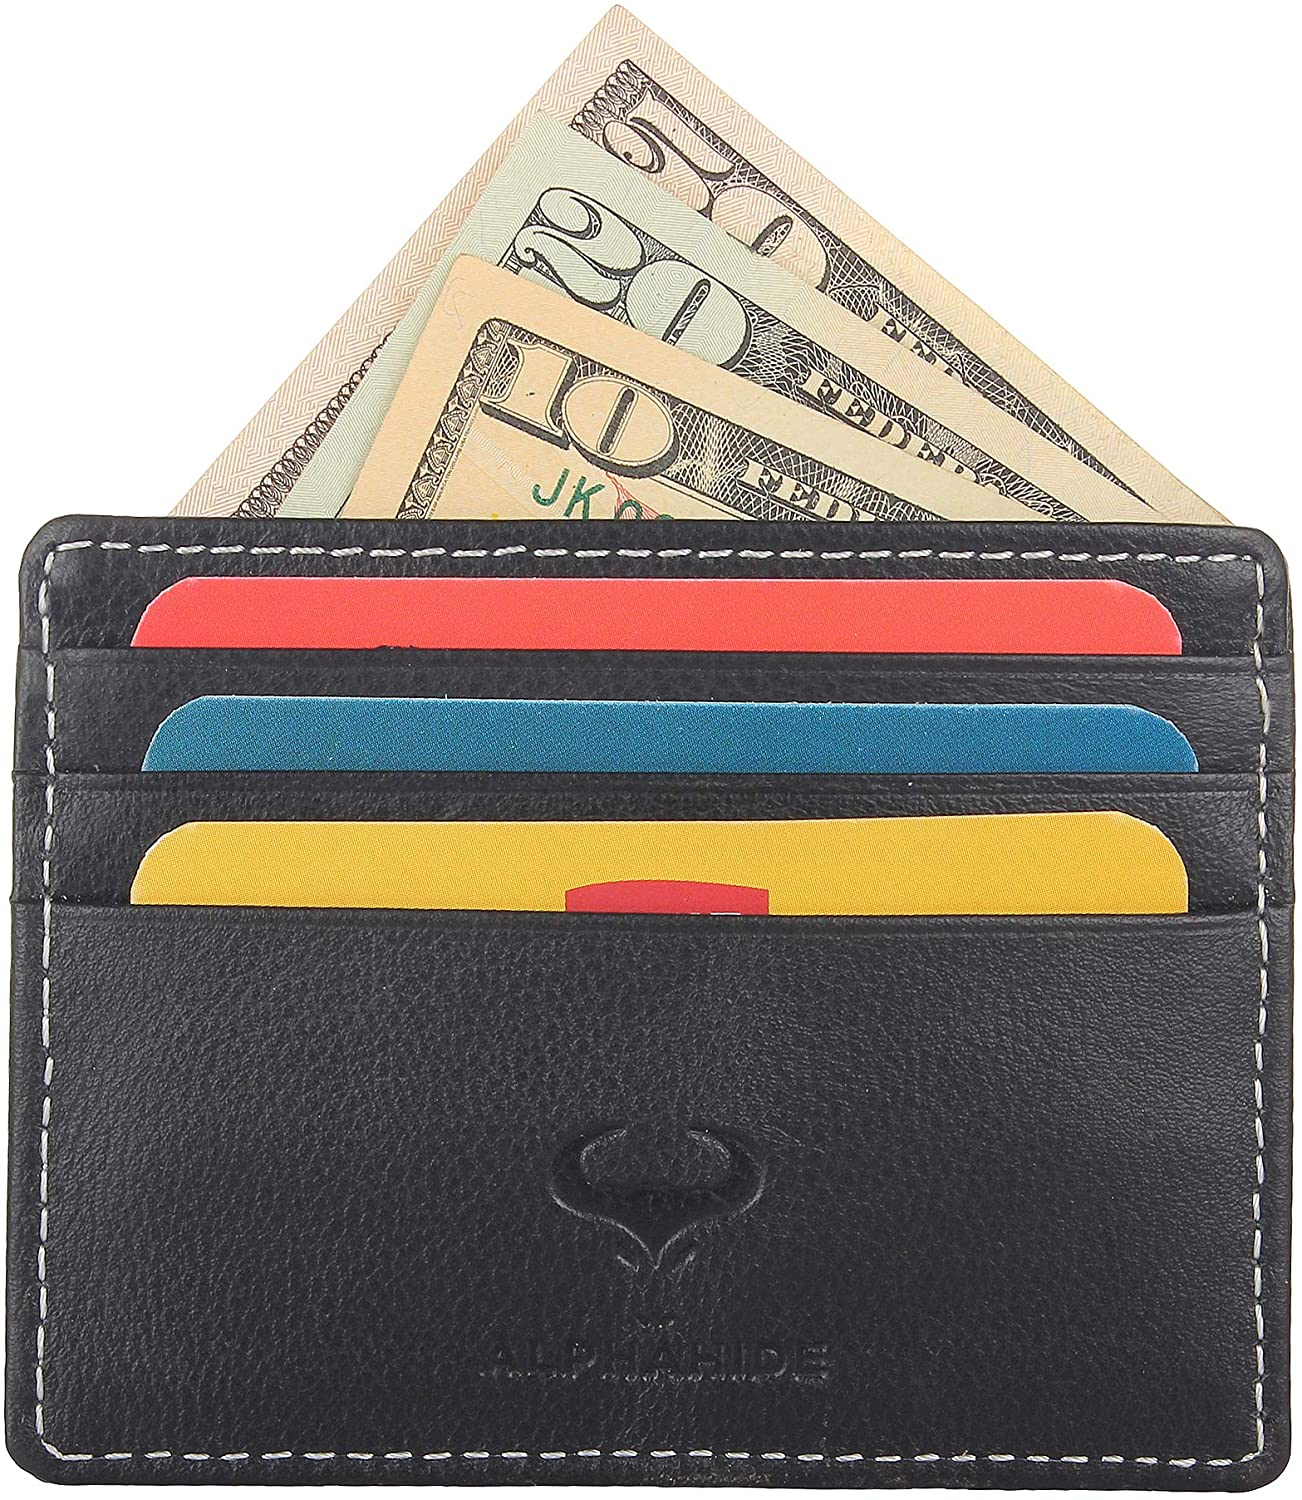 Genuine Leather Credit Card Holder - Thin ID Holder - Front Pocket Wallet - Slim Pouch - RFID Blocking